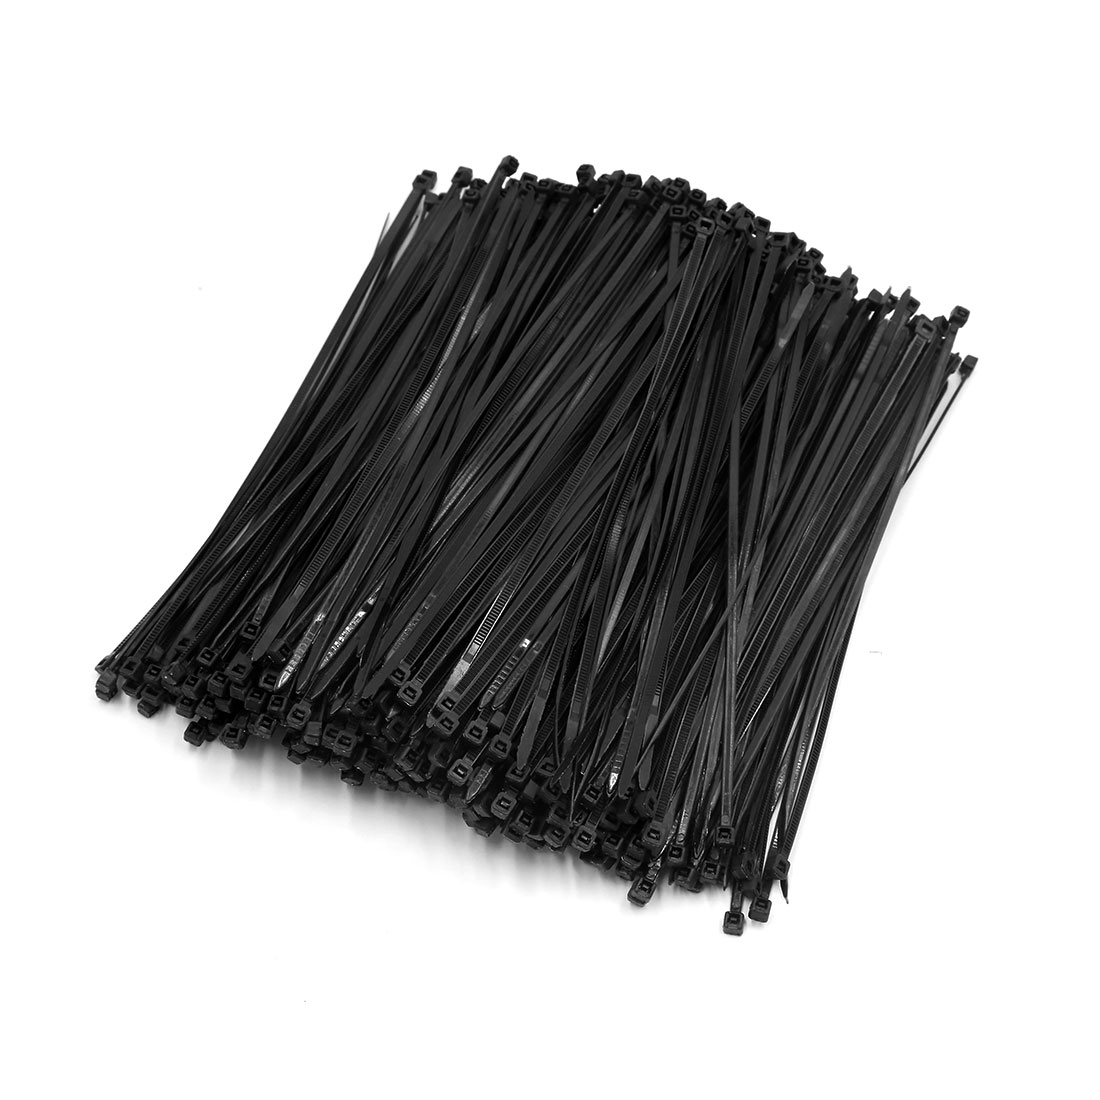 500pcs Black 4mm x 200mm Nylon Fasten Self Locking Cable Wire Tie for Car Vehicle